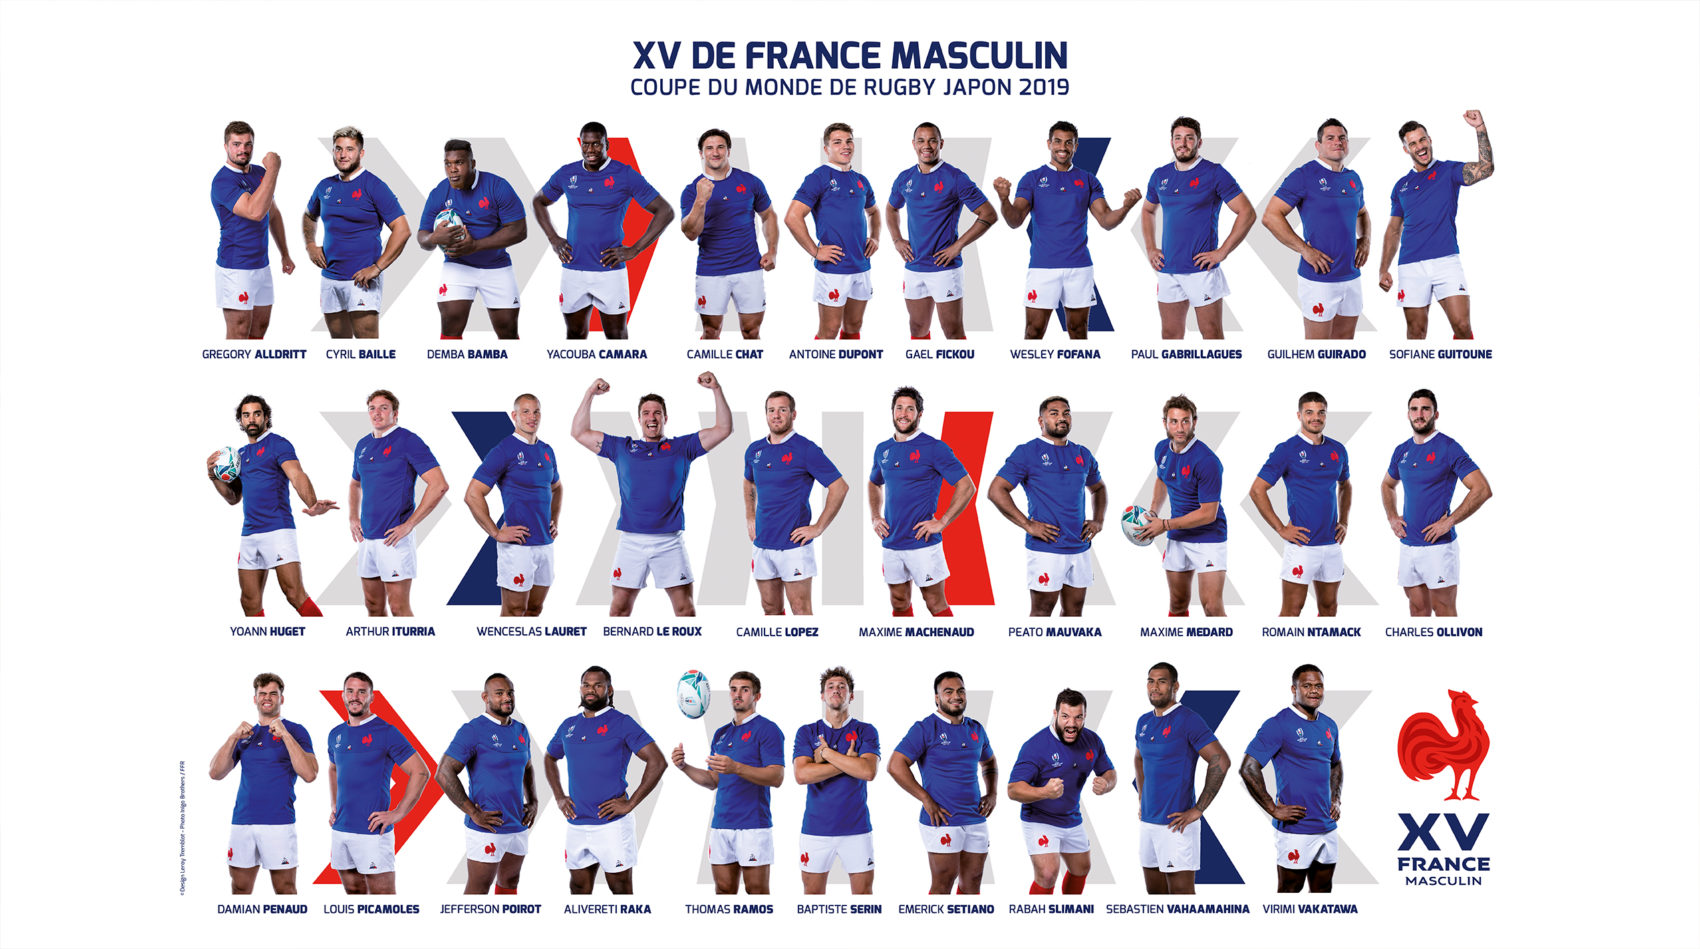 Projet_project_leroy_tremblot_FFR_federation_francaise_rugby_french_nouvelle_identite_new_identity_poster